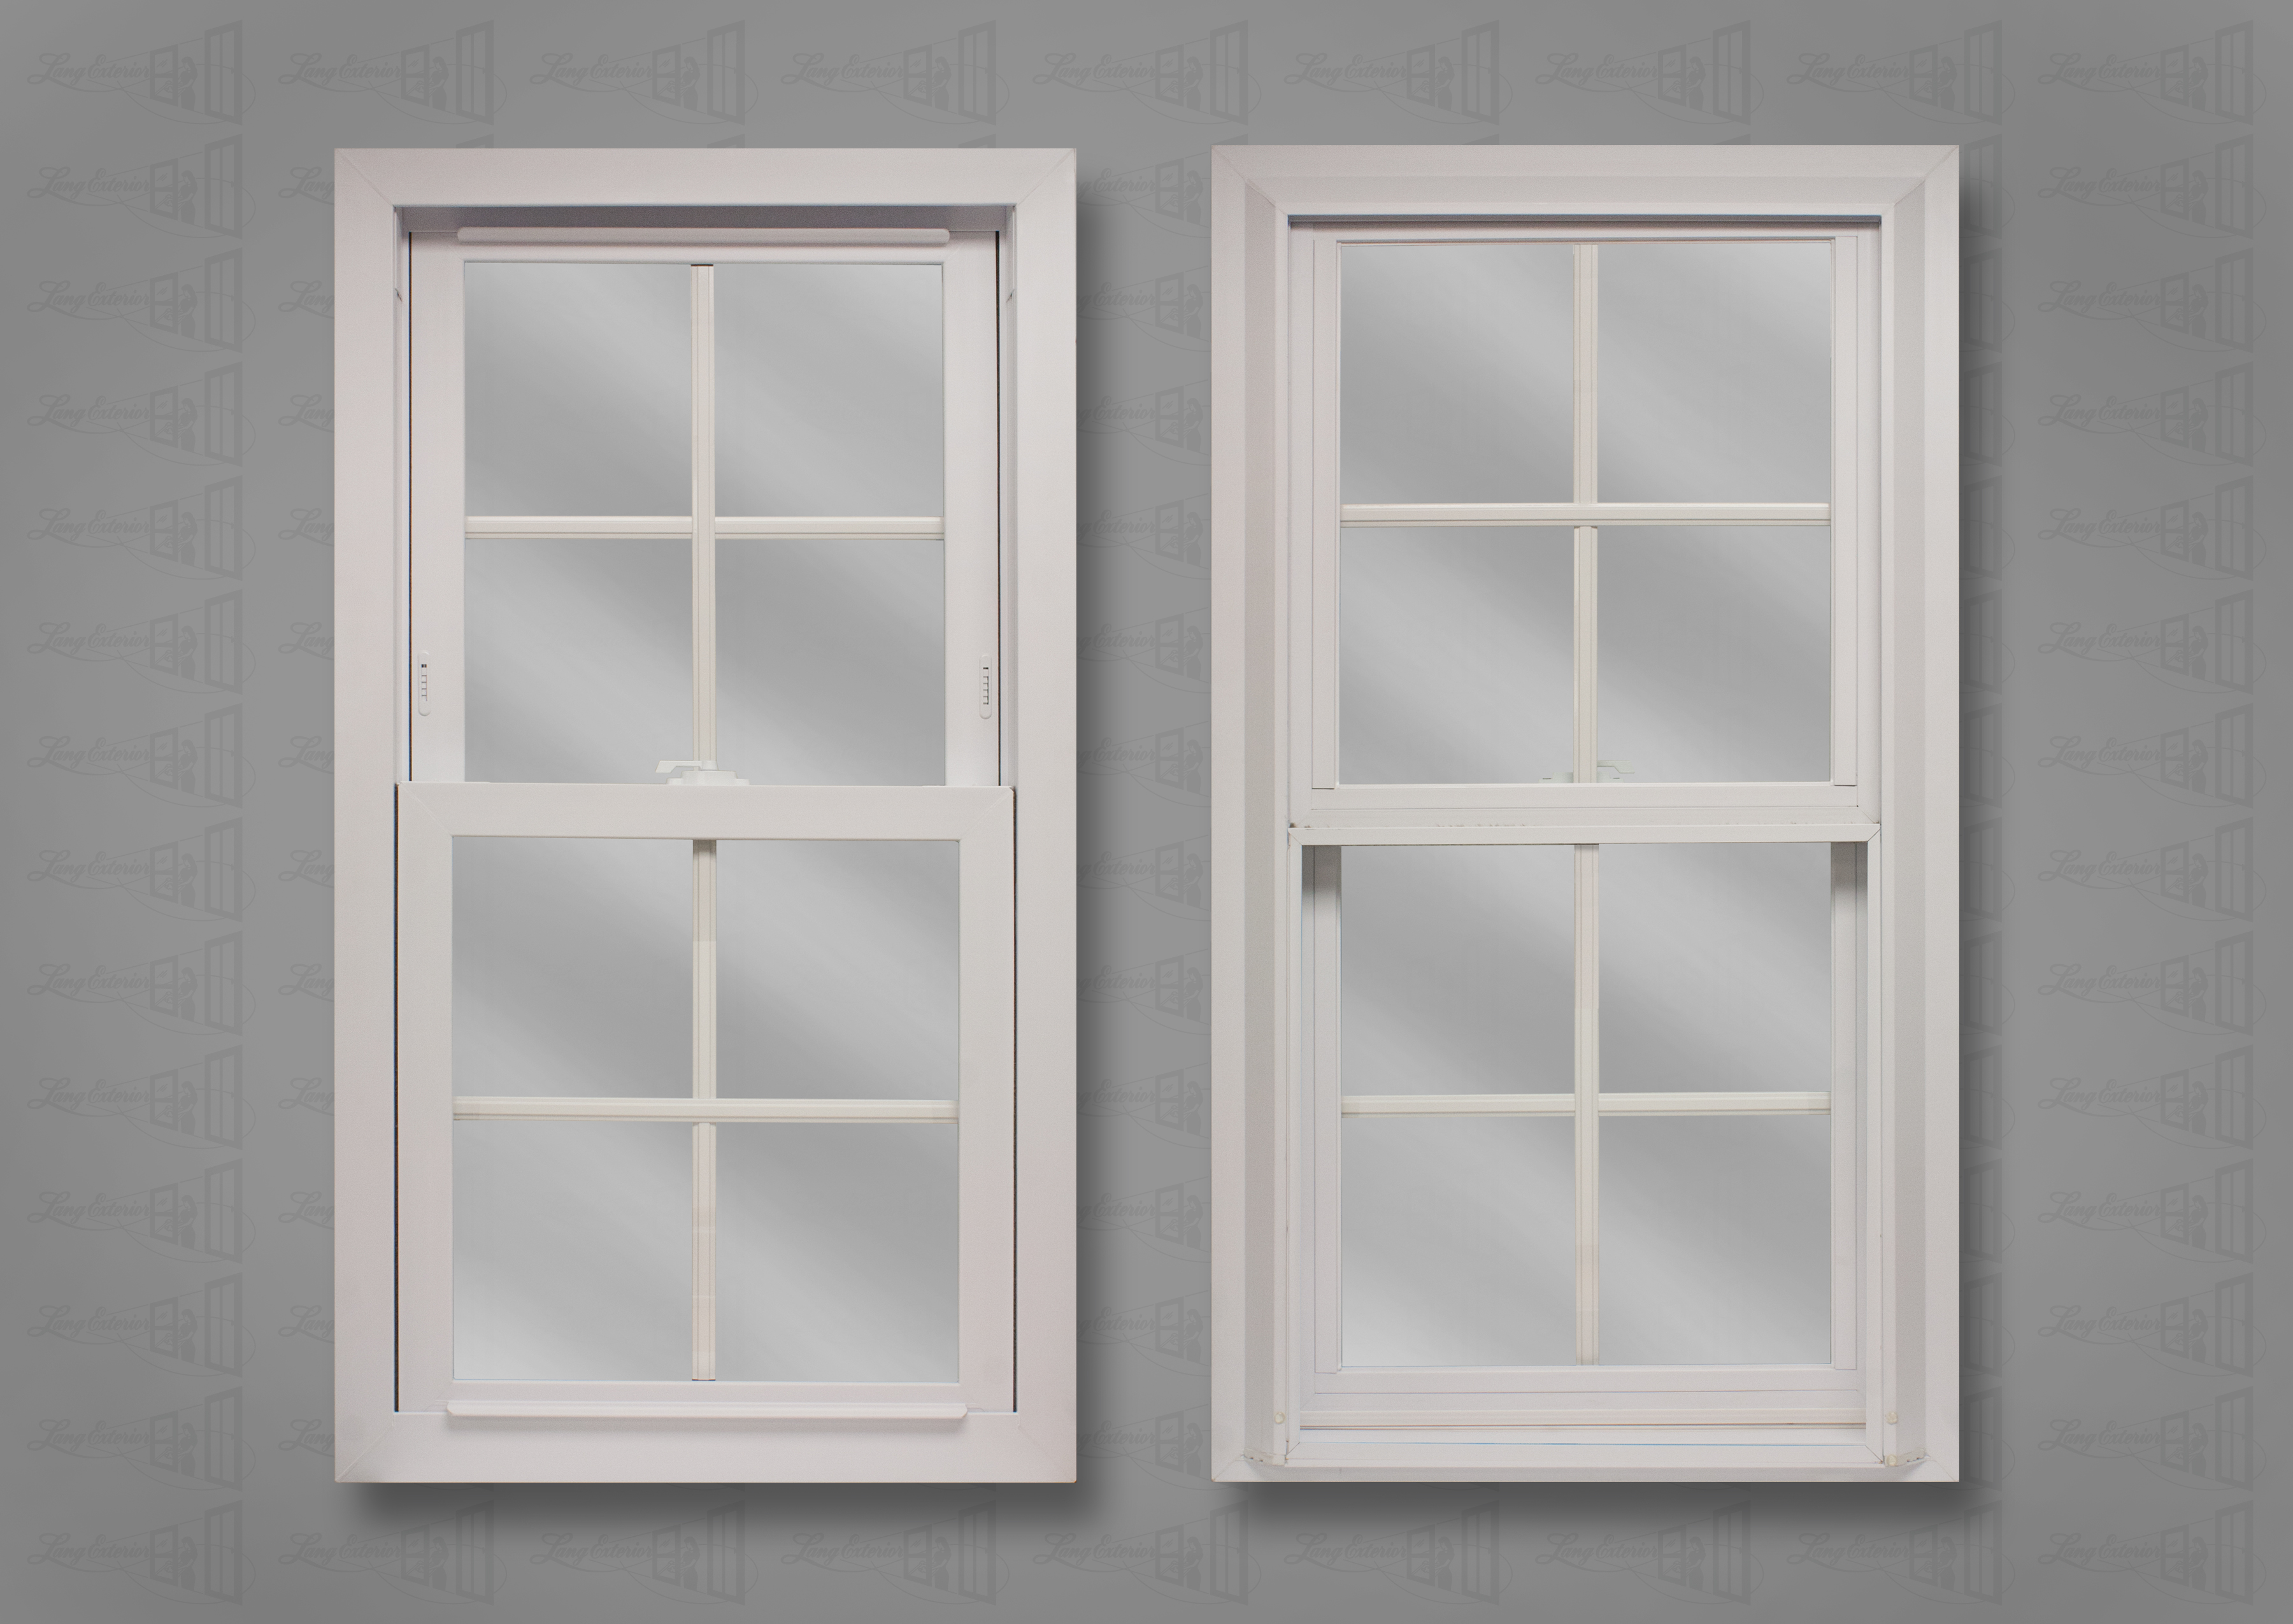 platinum 2400 series double hung window